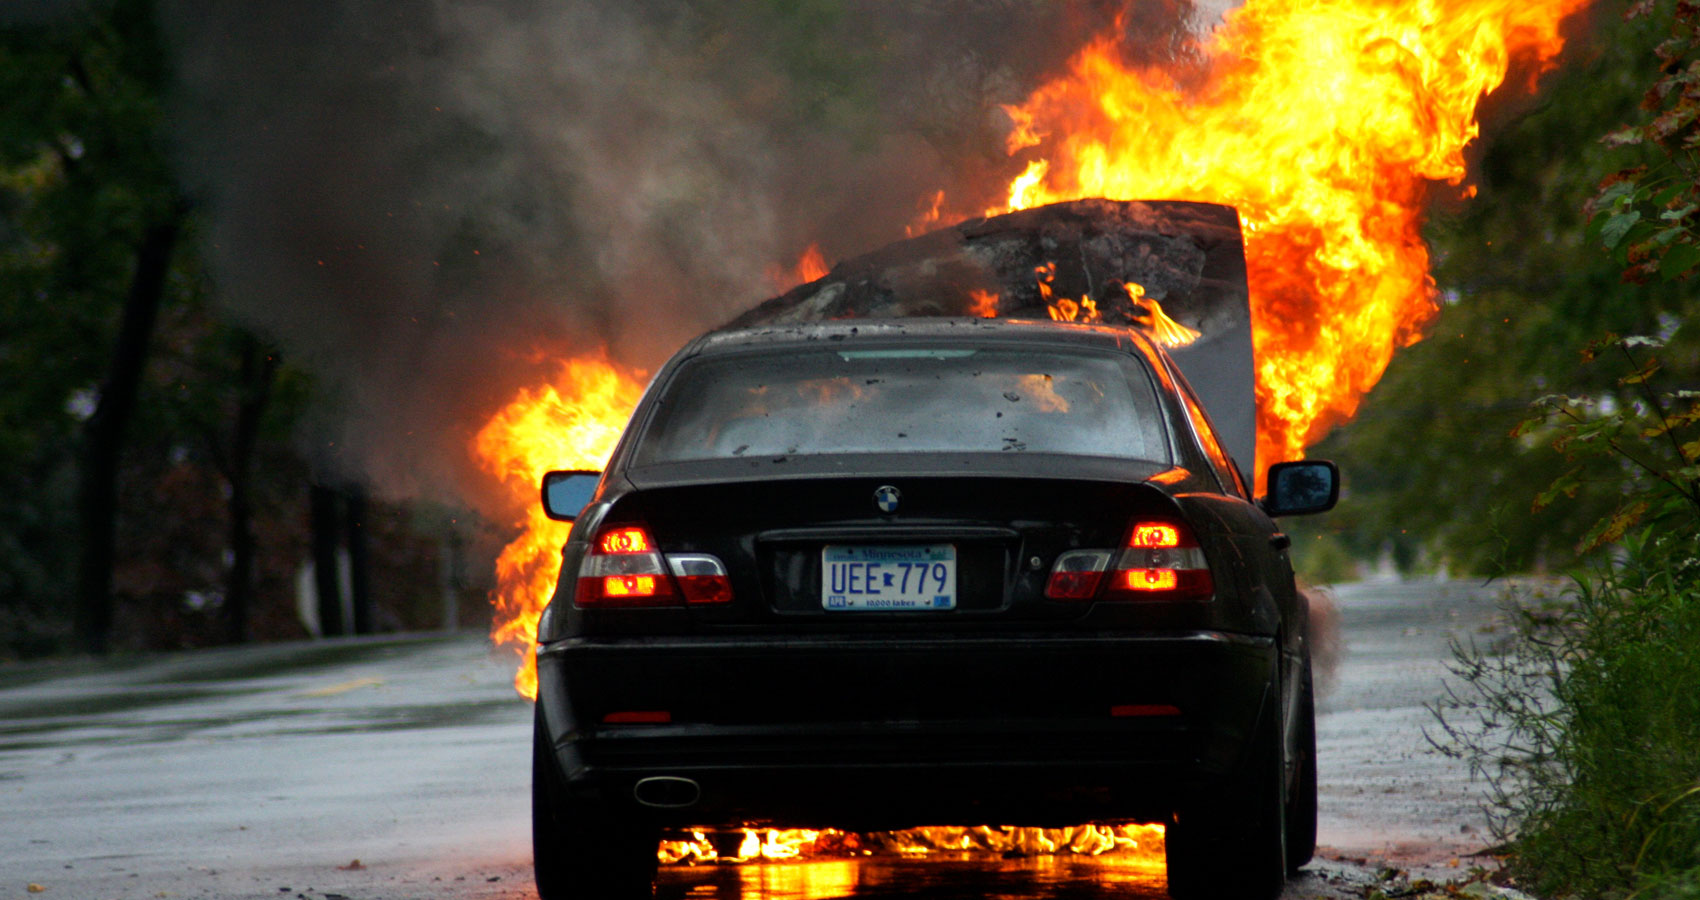 Car Fire, a poem written by James Gabriel at Spillwords.com